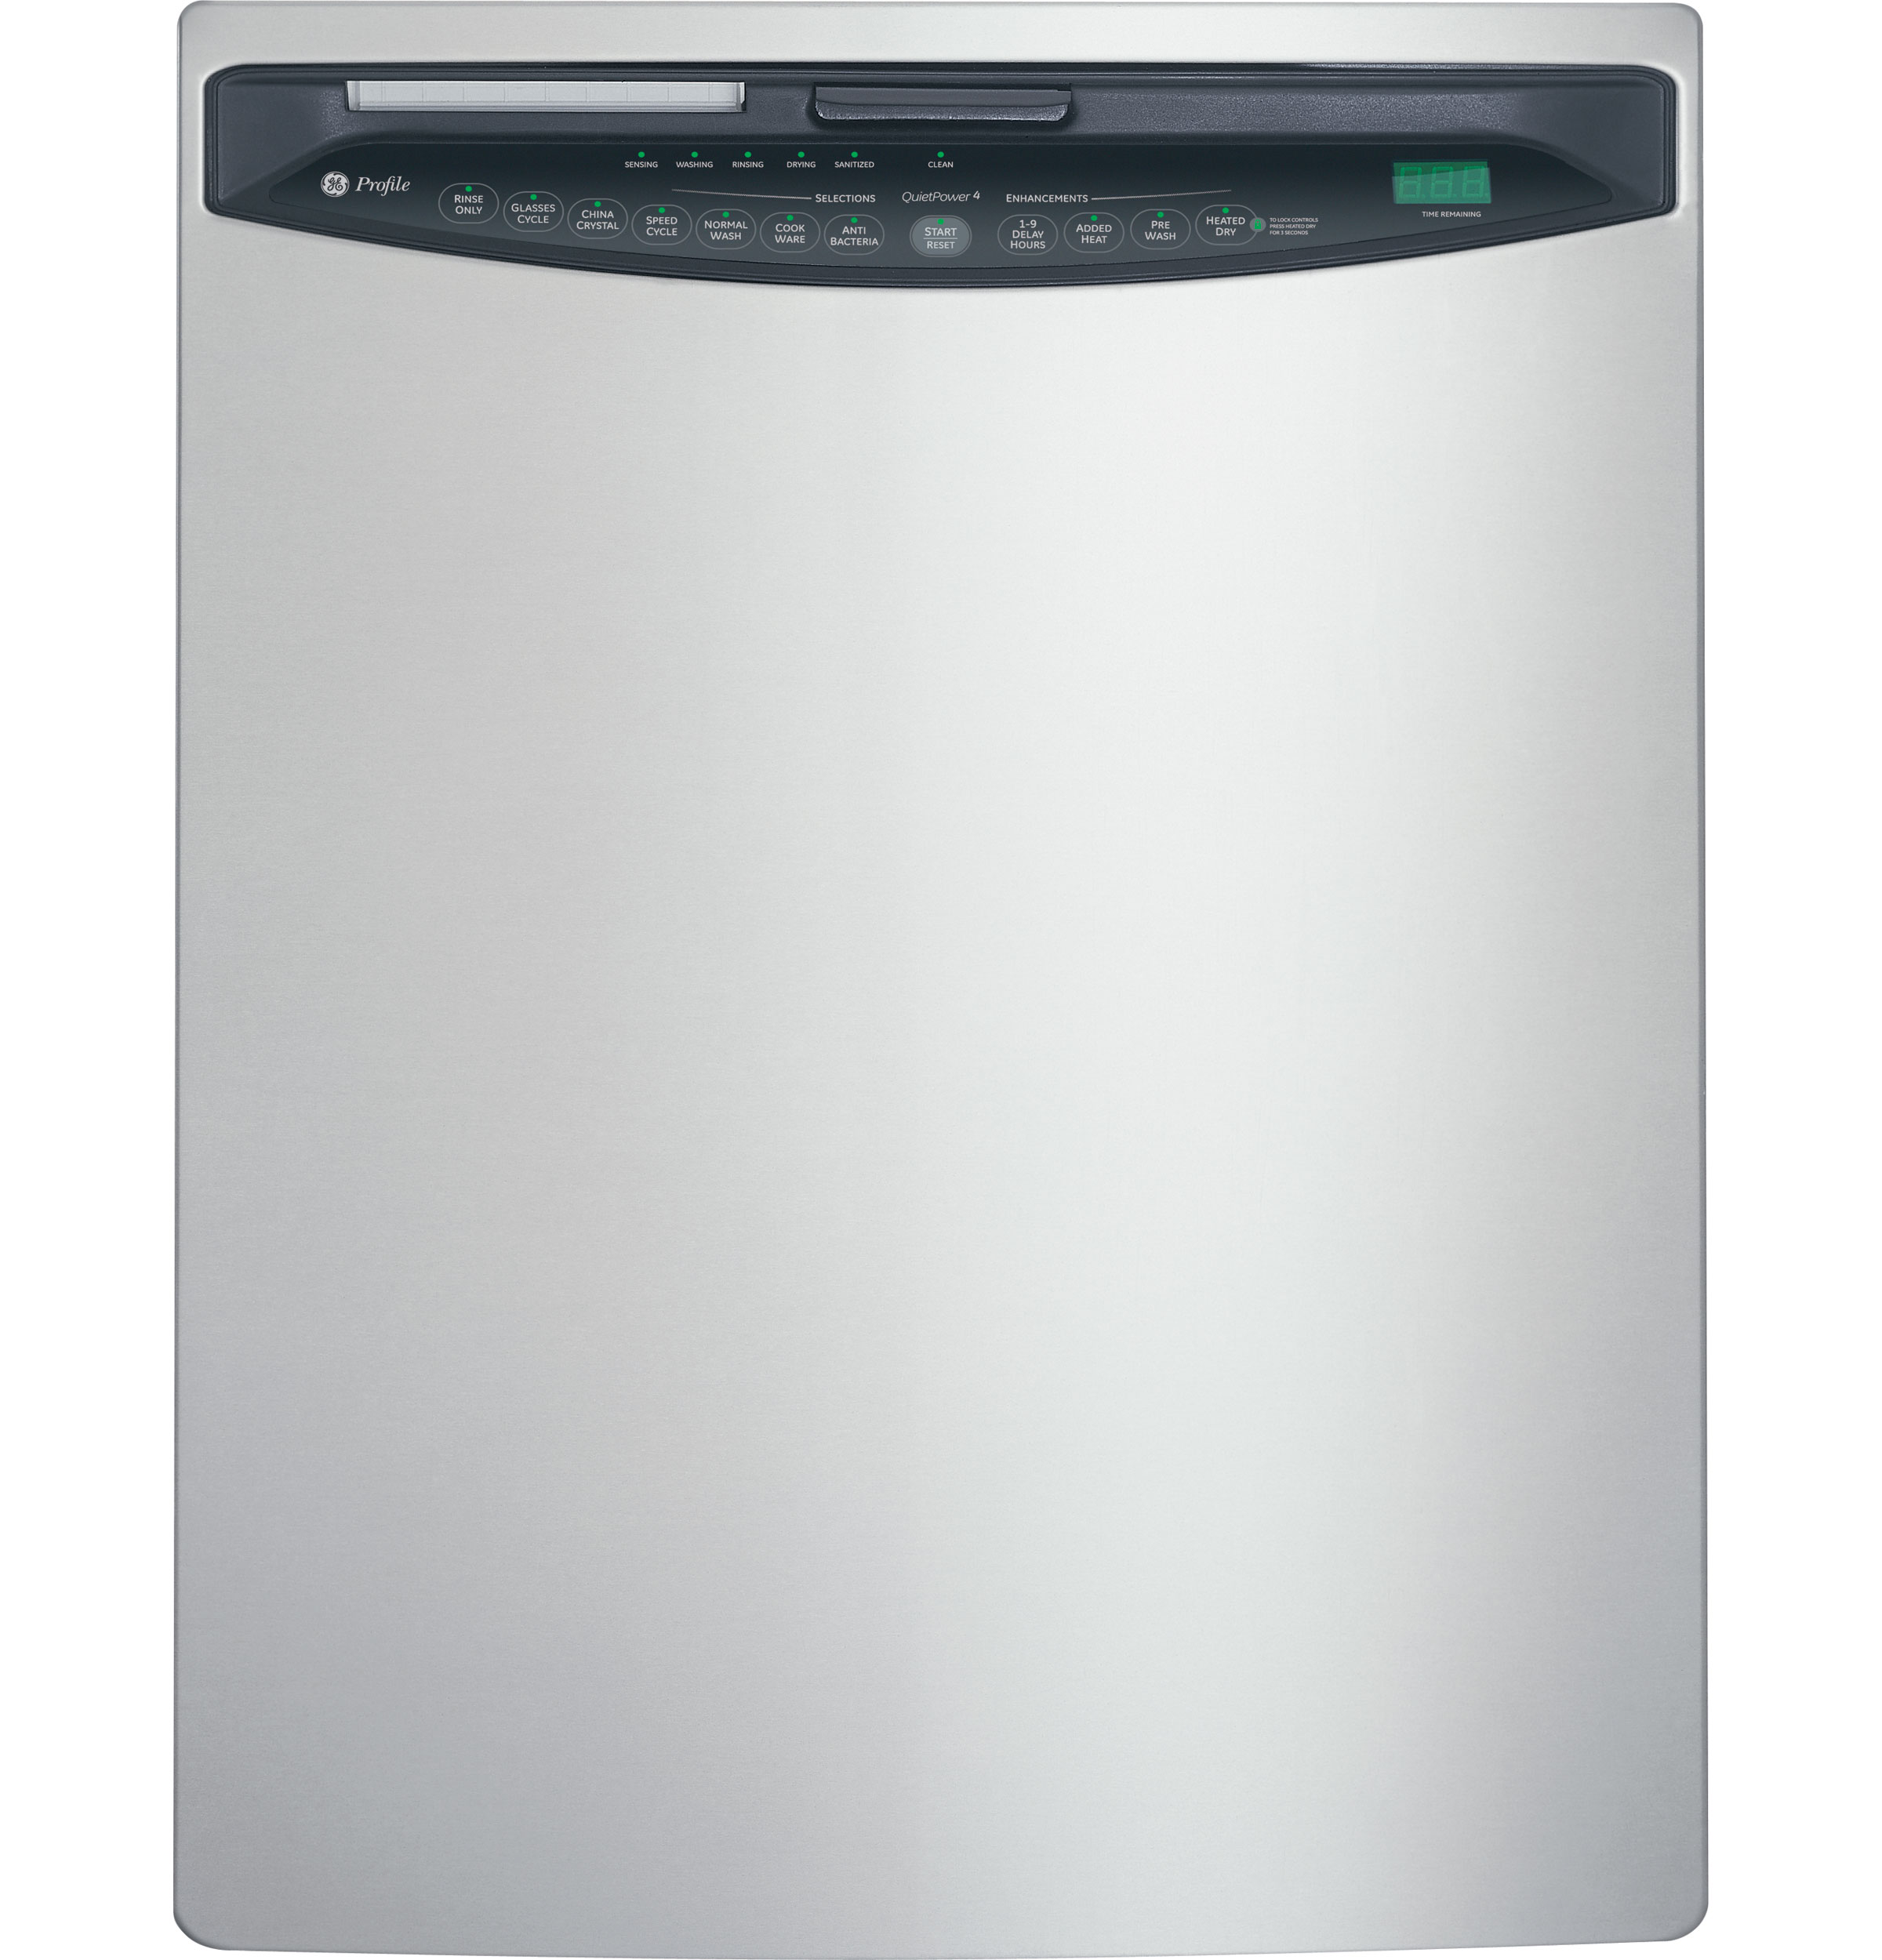 GE Profile™ Built-In Dishwasher | PDW7880NSS | GE Appliances on furnace fuse, kenmore microwave fuse, garbage disposal fuse, lawn mower fuse, relay fuse, radio fuse, dryer fuse, samsung microwave fuse, vacuum cleaner fuse, kenmore refrigerator fuse, maytag washing machine fuse, computer fuse, lg refrigerator fuse,